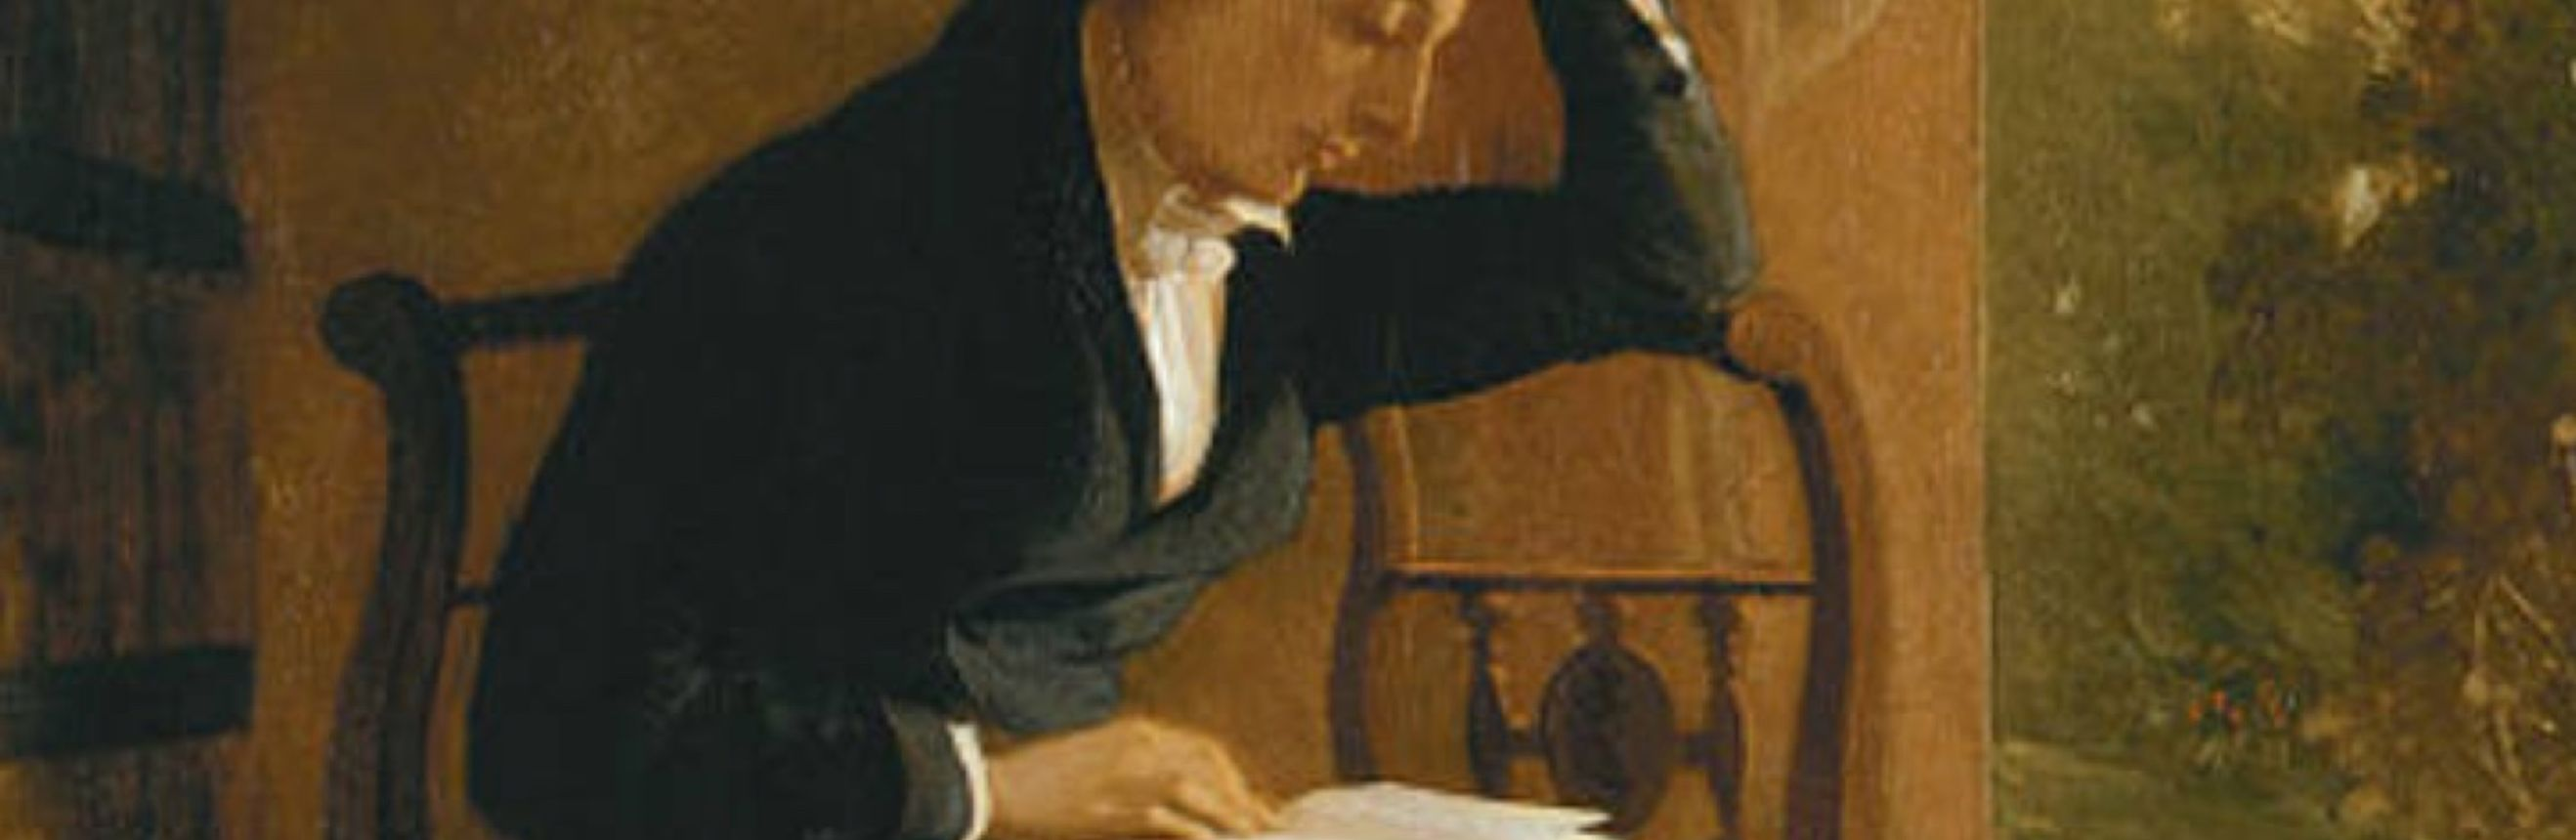 The cover for the Standard Ebooks edition of Poetry, by John Keats